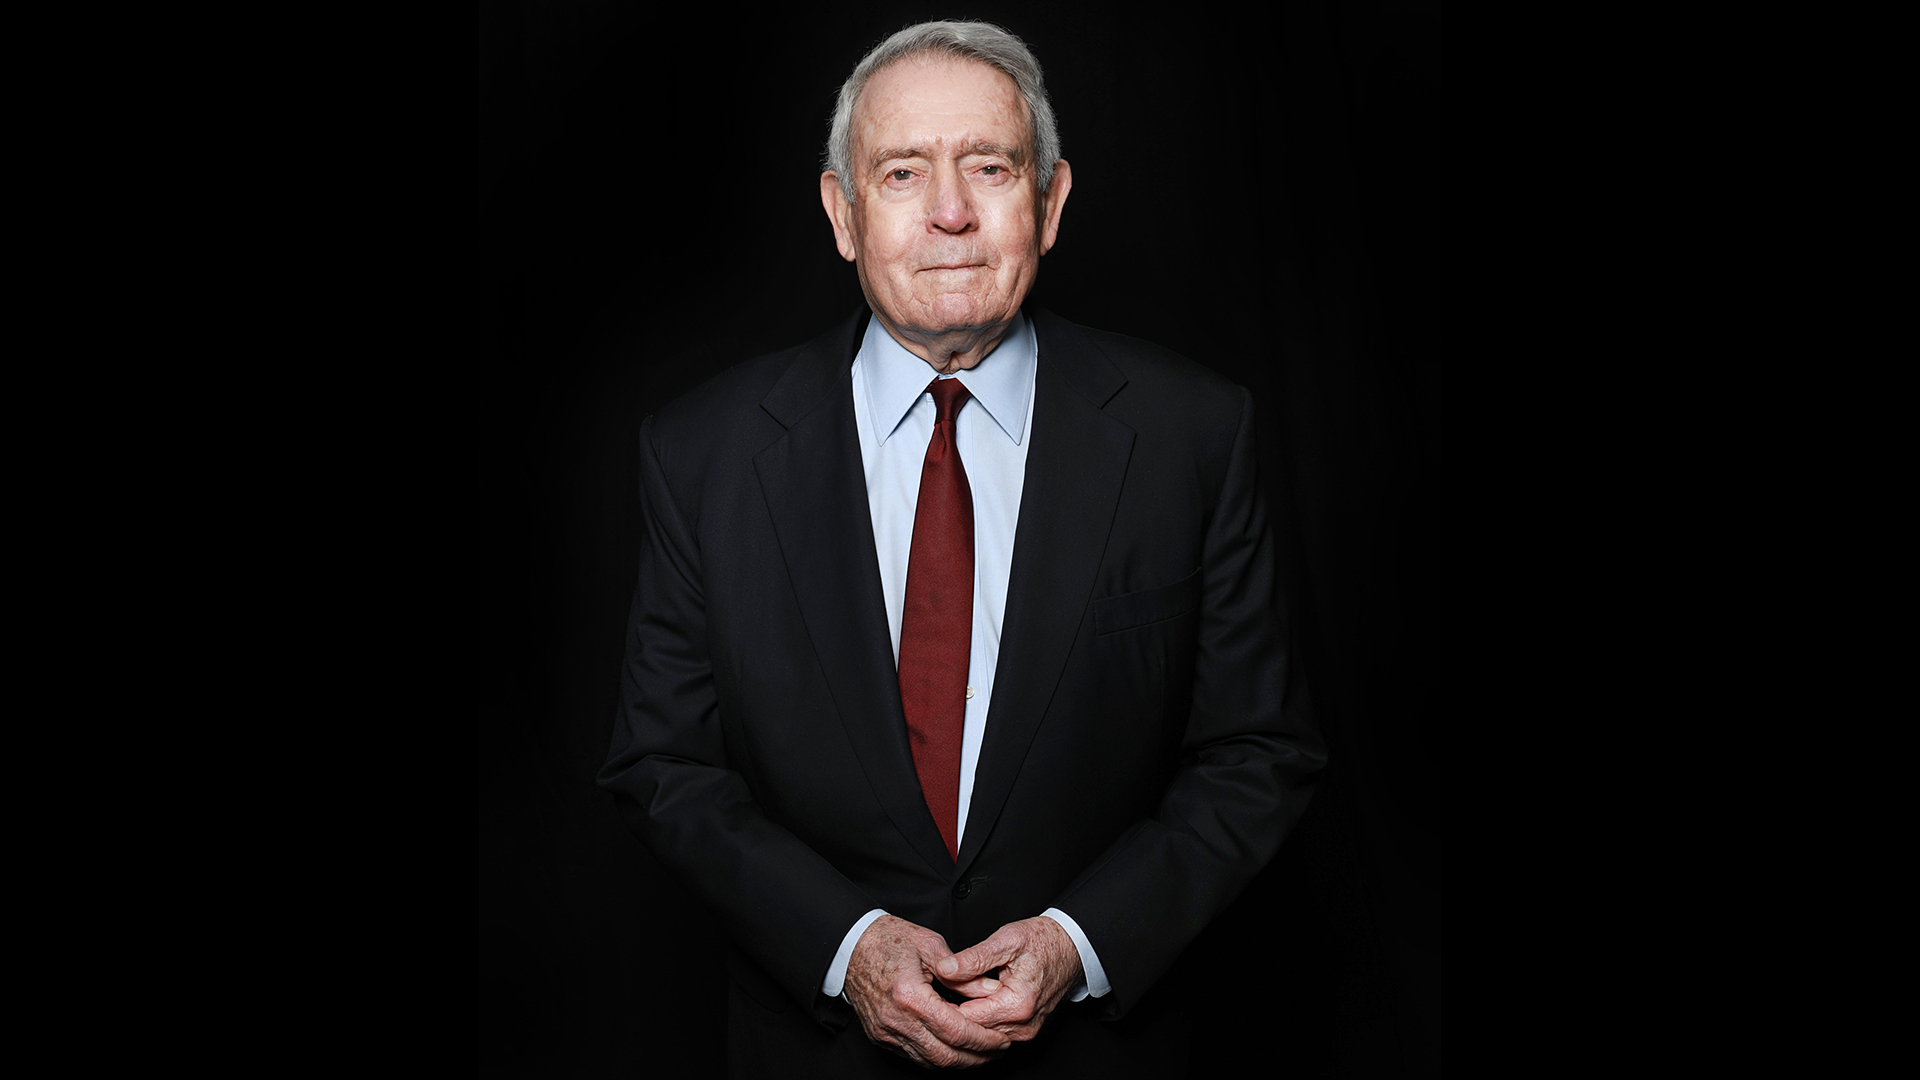 Hear Dan Rather's final show & a special marathon in honor of his 90th birthday